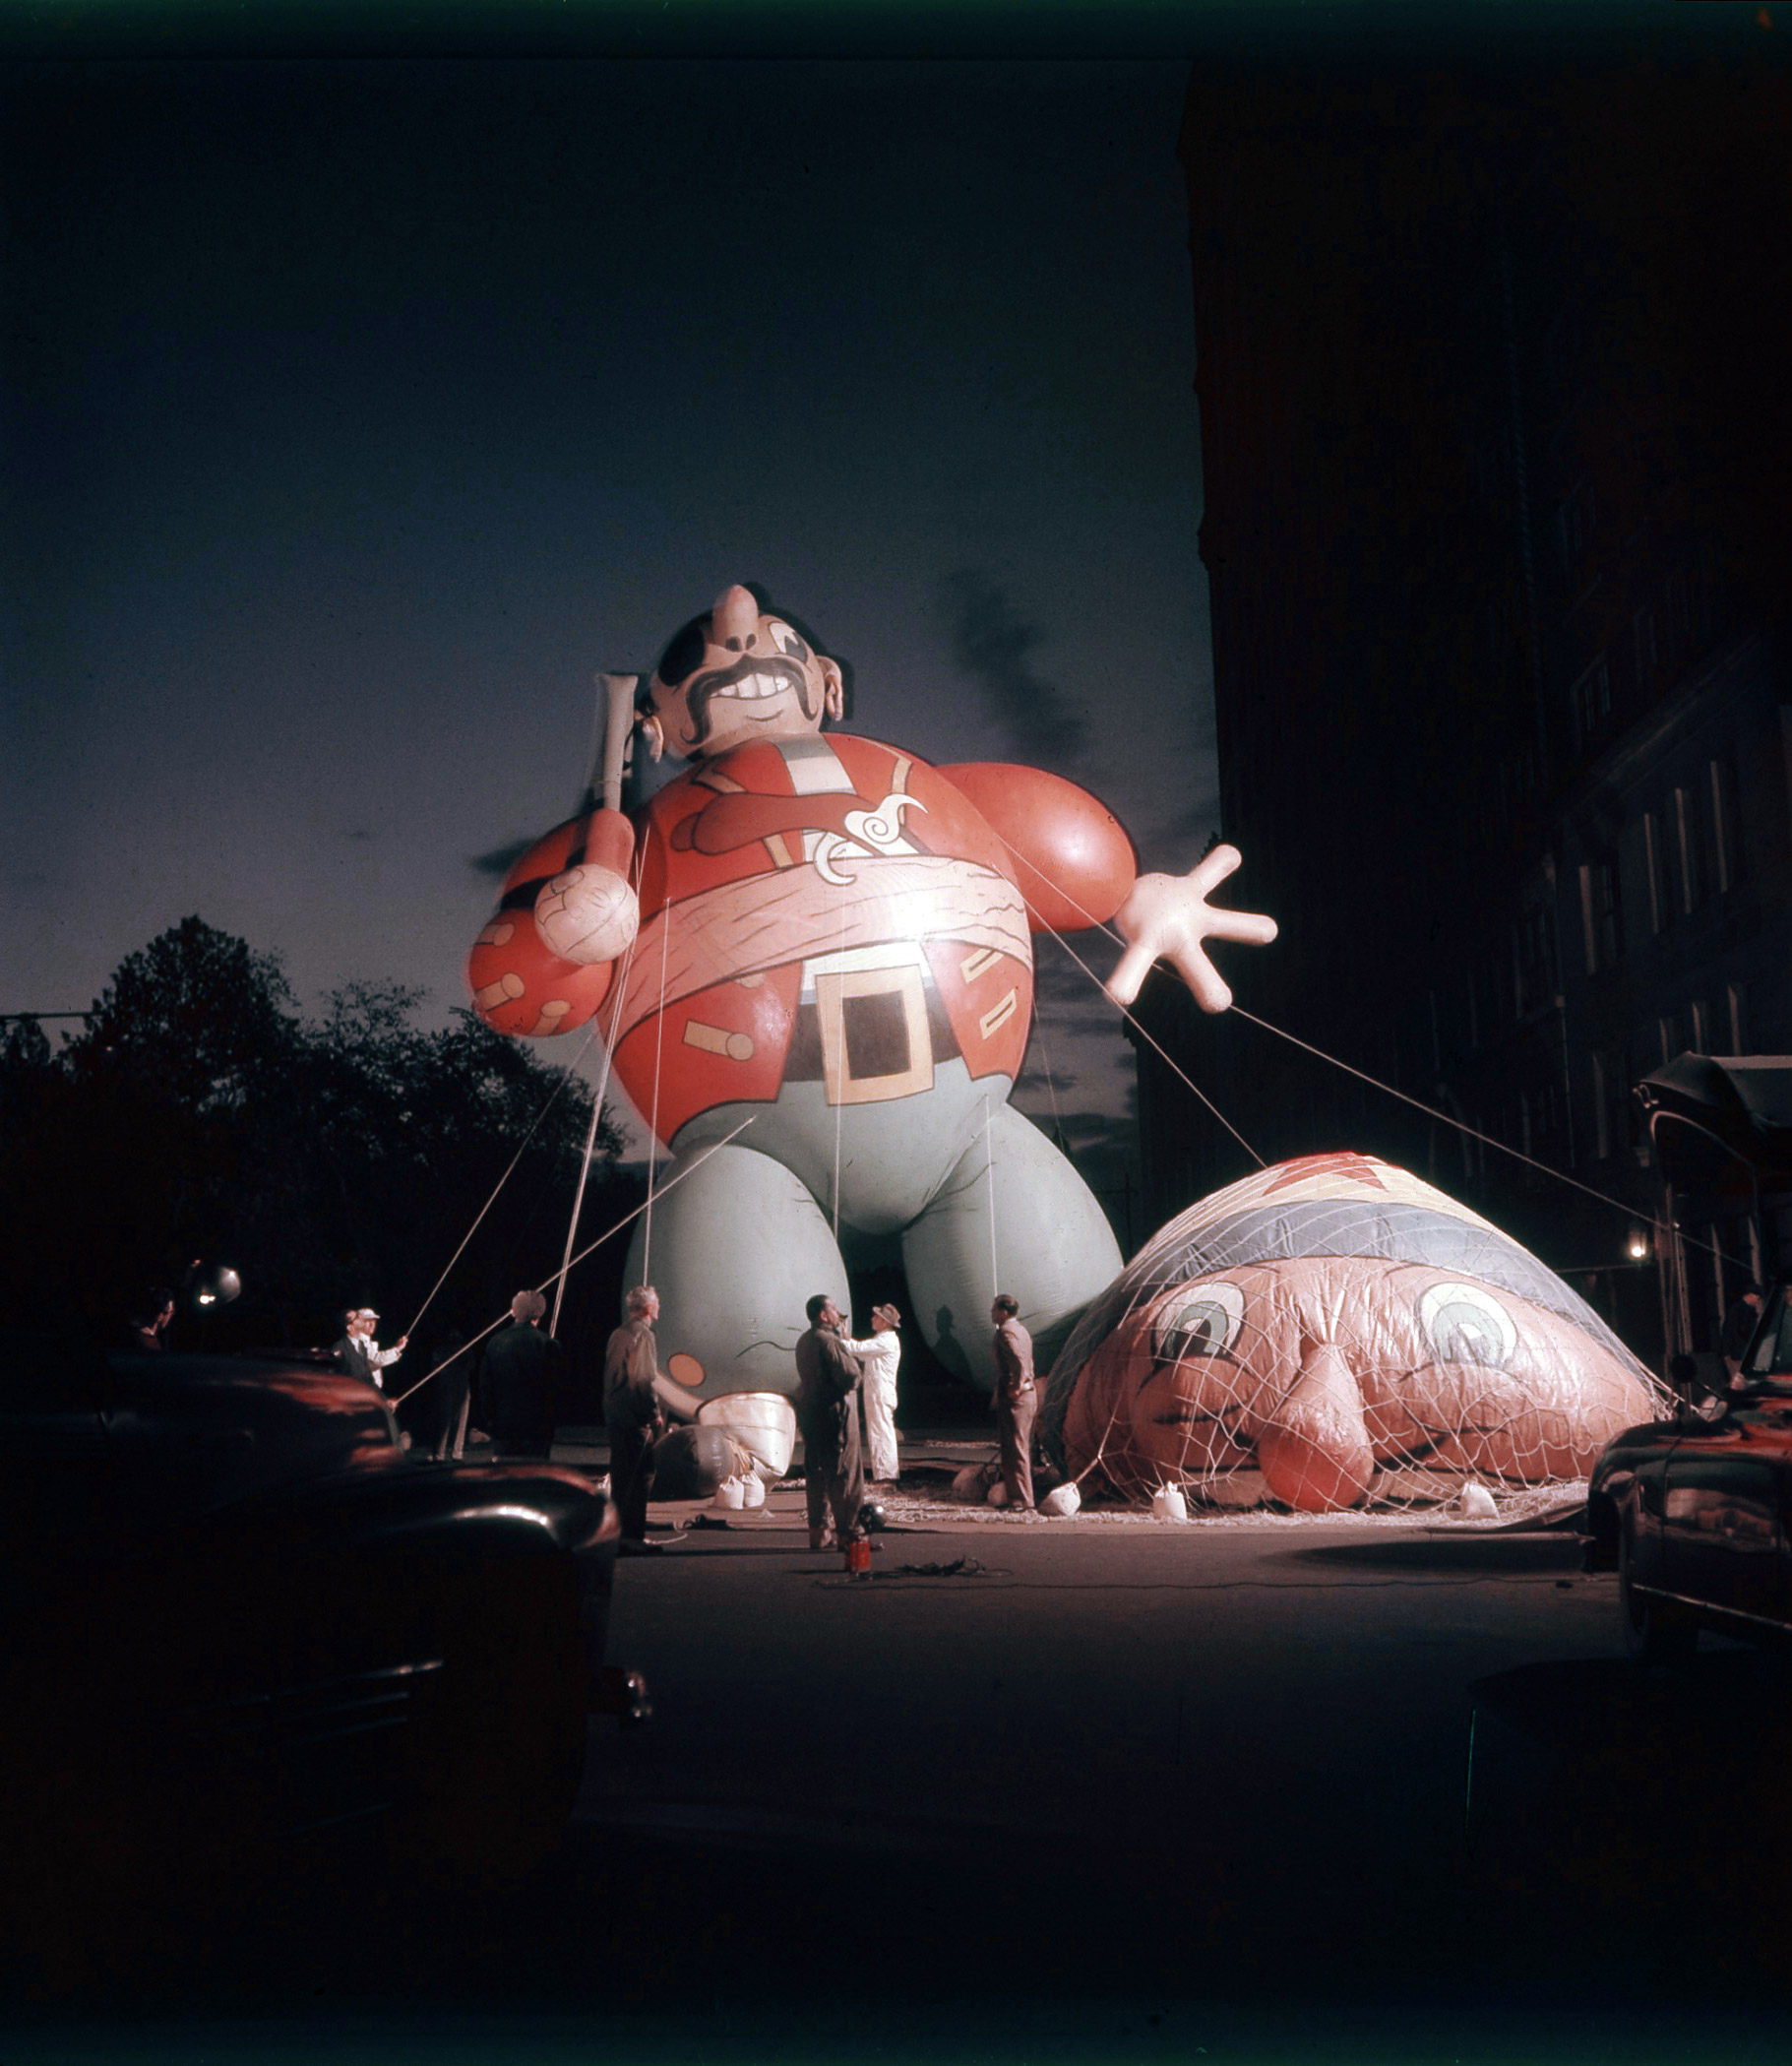 Caption from LIFE. Gigantic balloon figures, the 40-to-75-foot-high trademarks of Macy's Thanksgiving Day parade in New York, are inflated at predawn rehearsal. Six in all, they cost $5,000 to $8,000 each, and they use 50,000 cubic feet of helium. They are occasionally revamped: a cop becomes a fireman, a puritan a pirate.